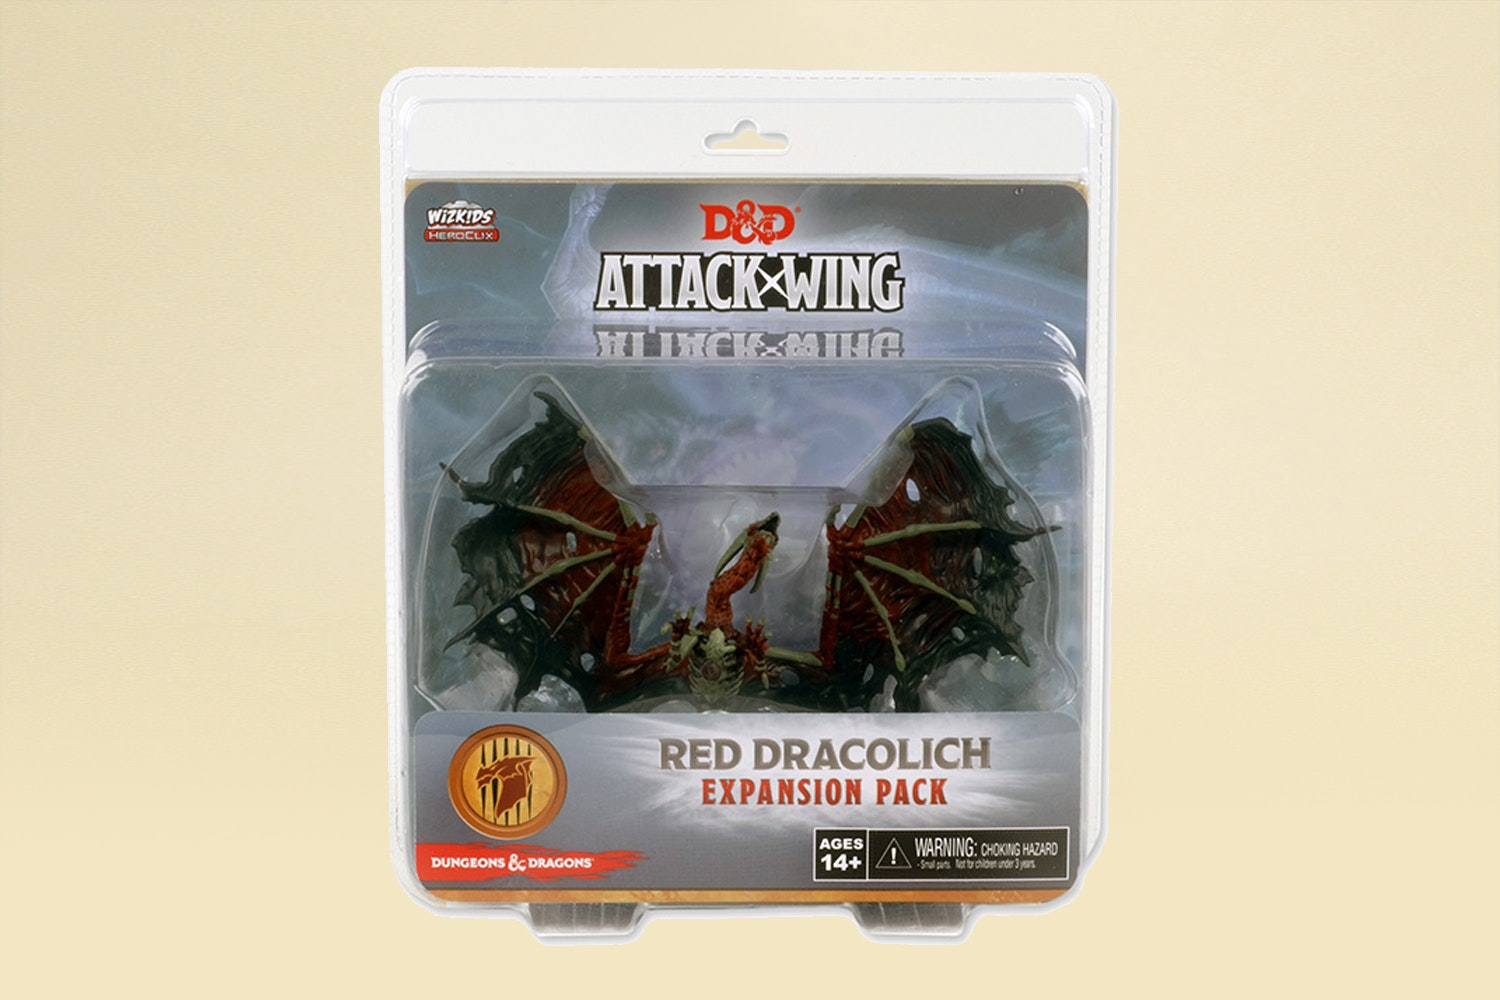 Red Dracolich